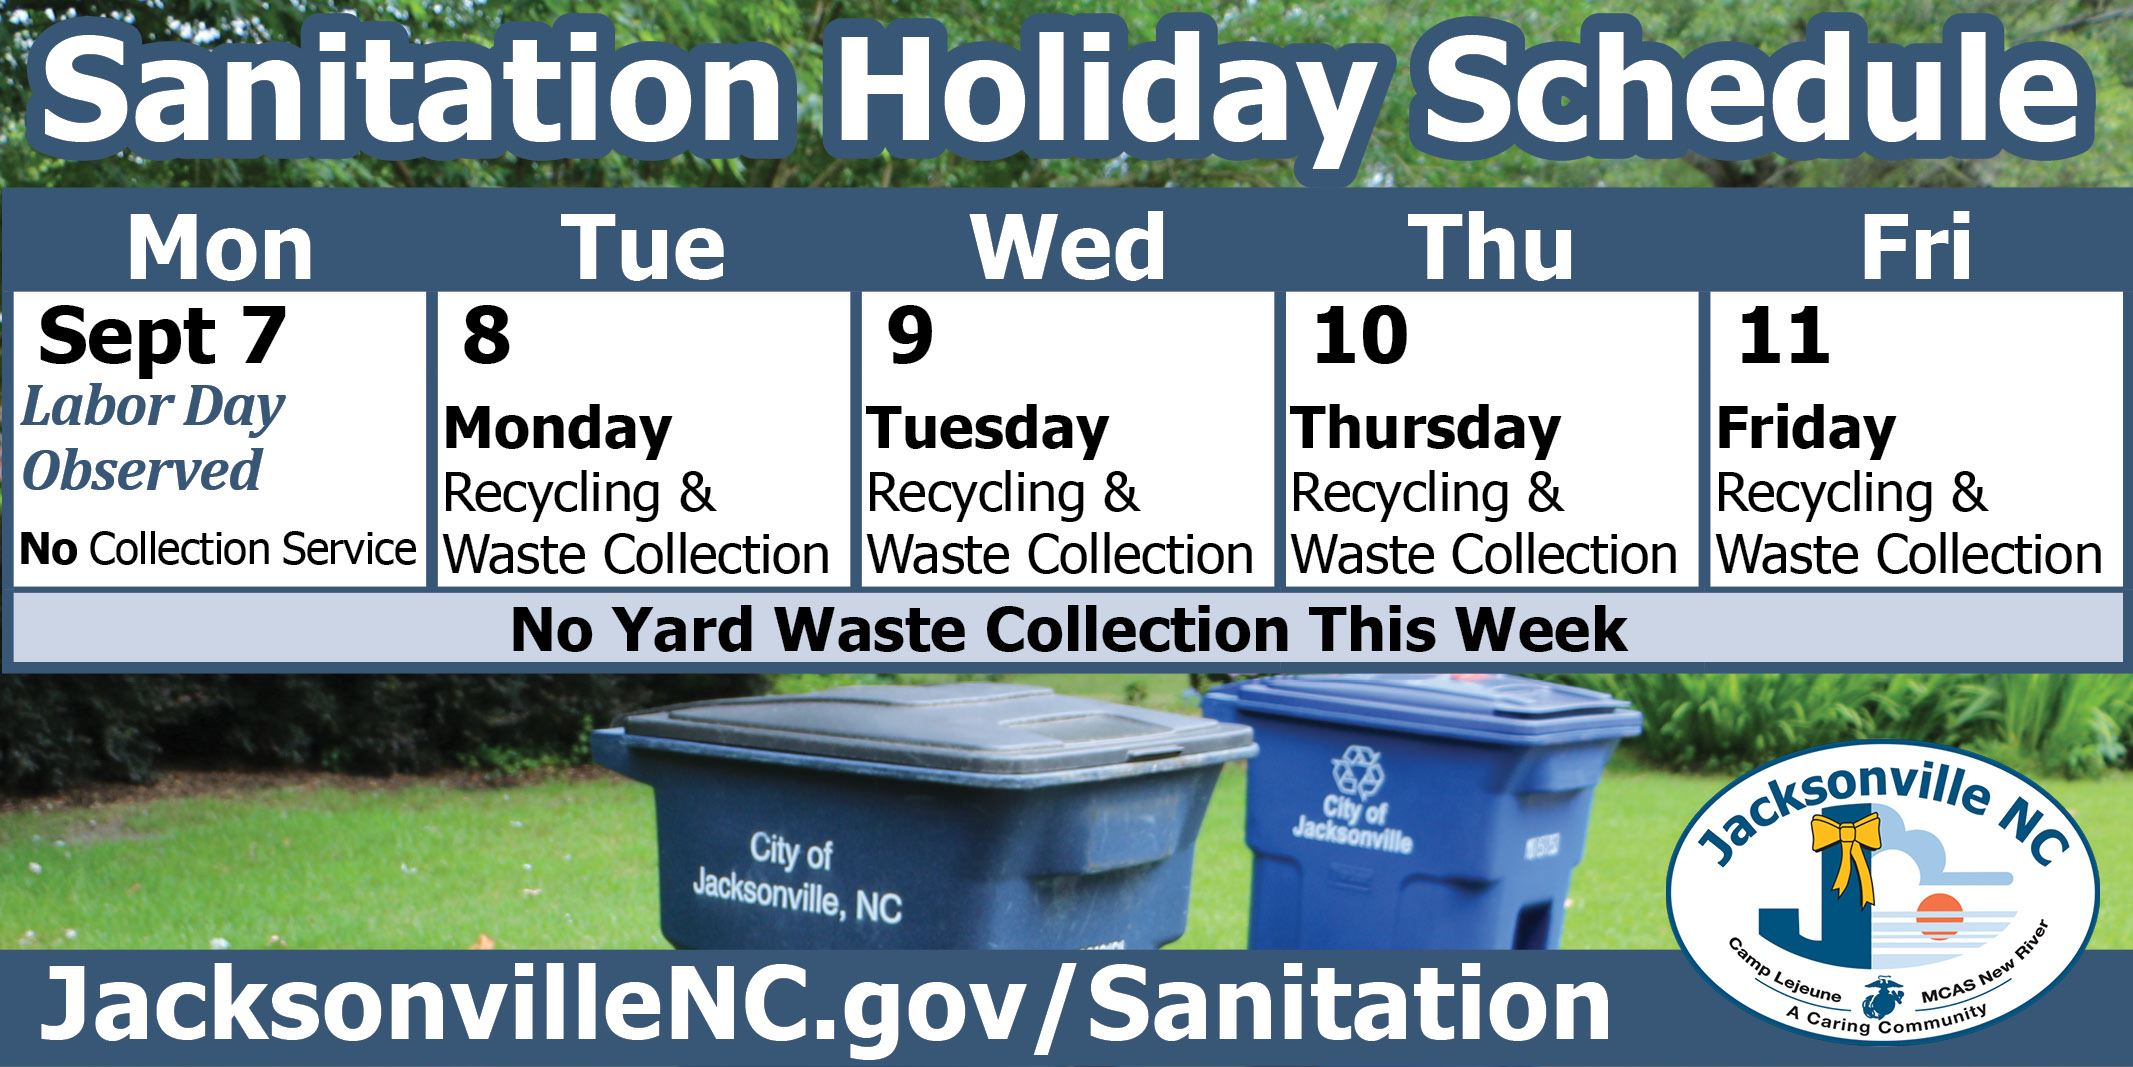 Sanitation Holiday Schedule - Labor Day Week 2020